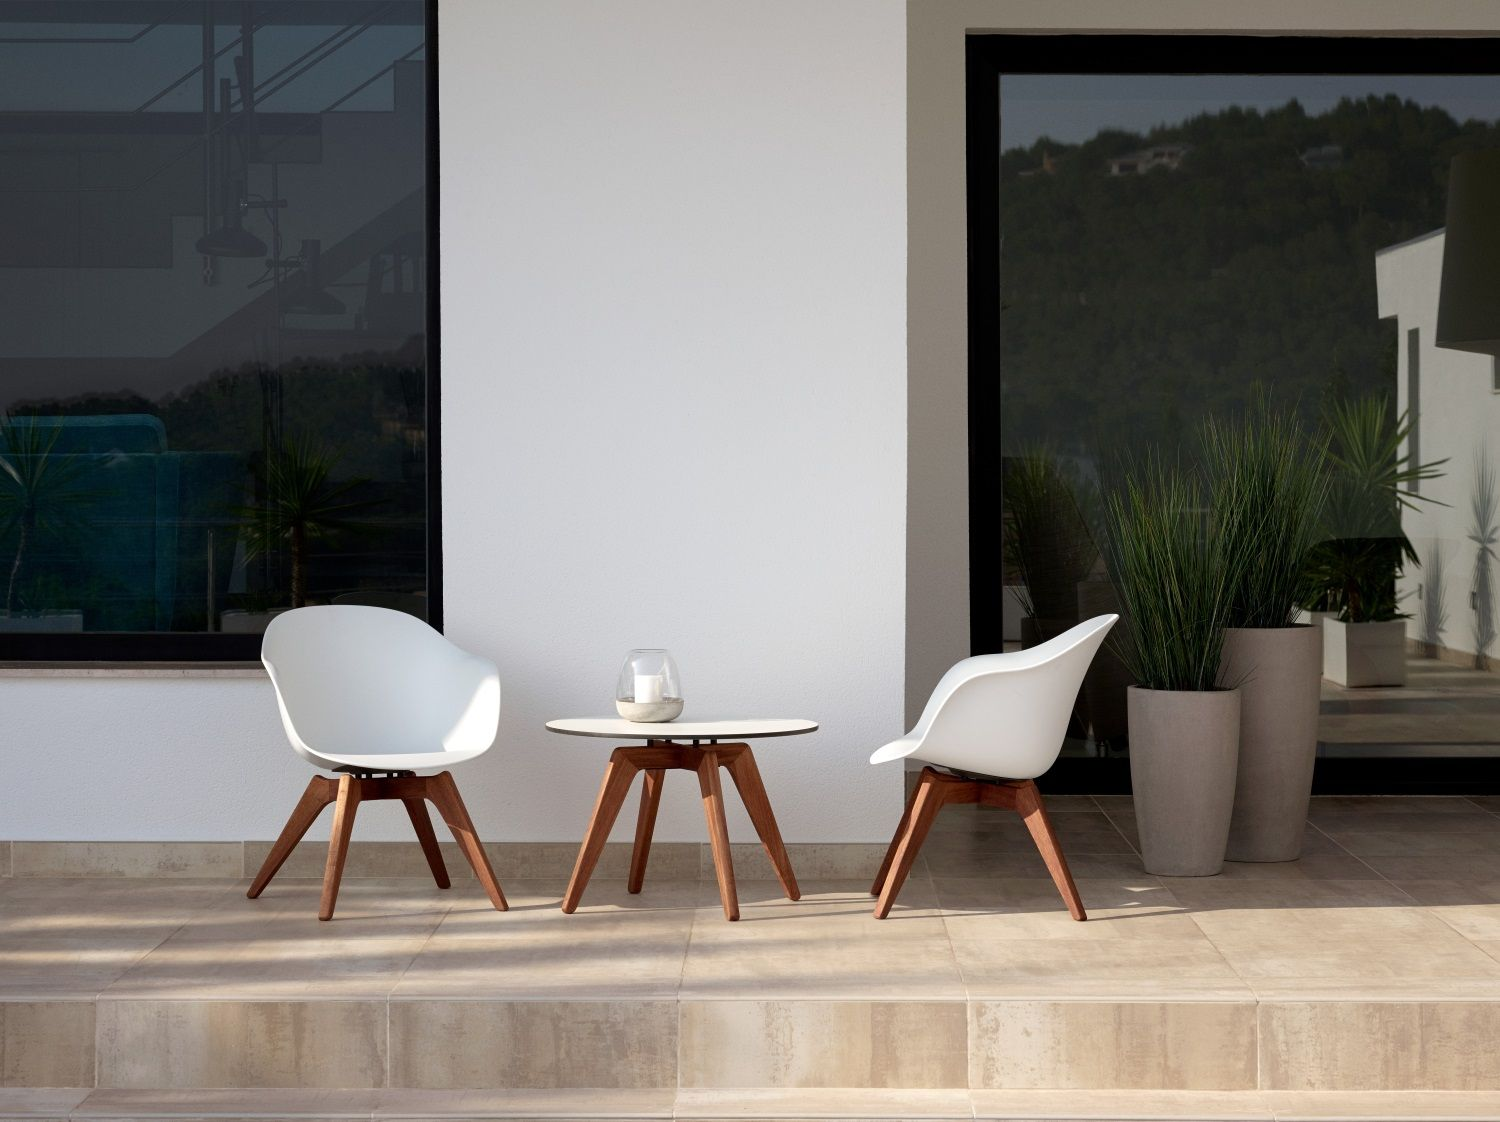 boconcept adelaide - Google-haku : boconcept chaise - Sectionals, Sofas & Couches